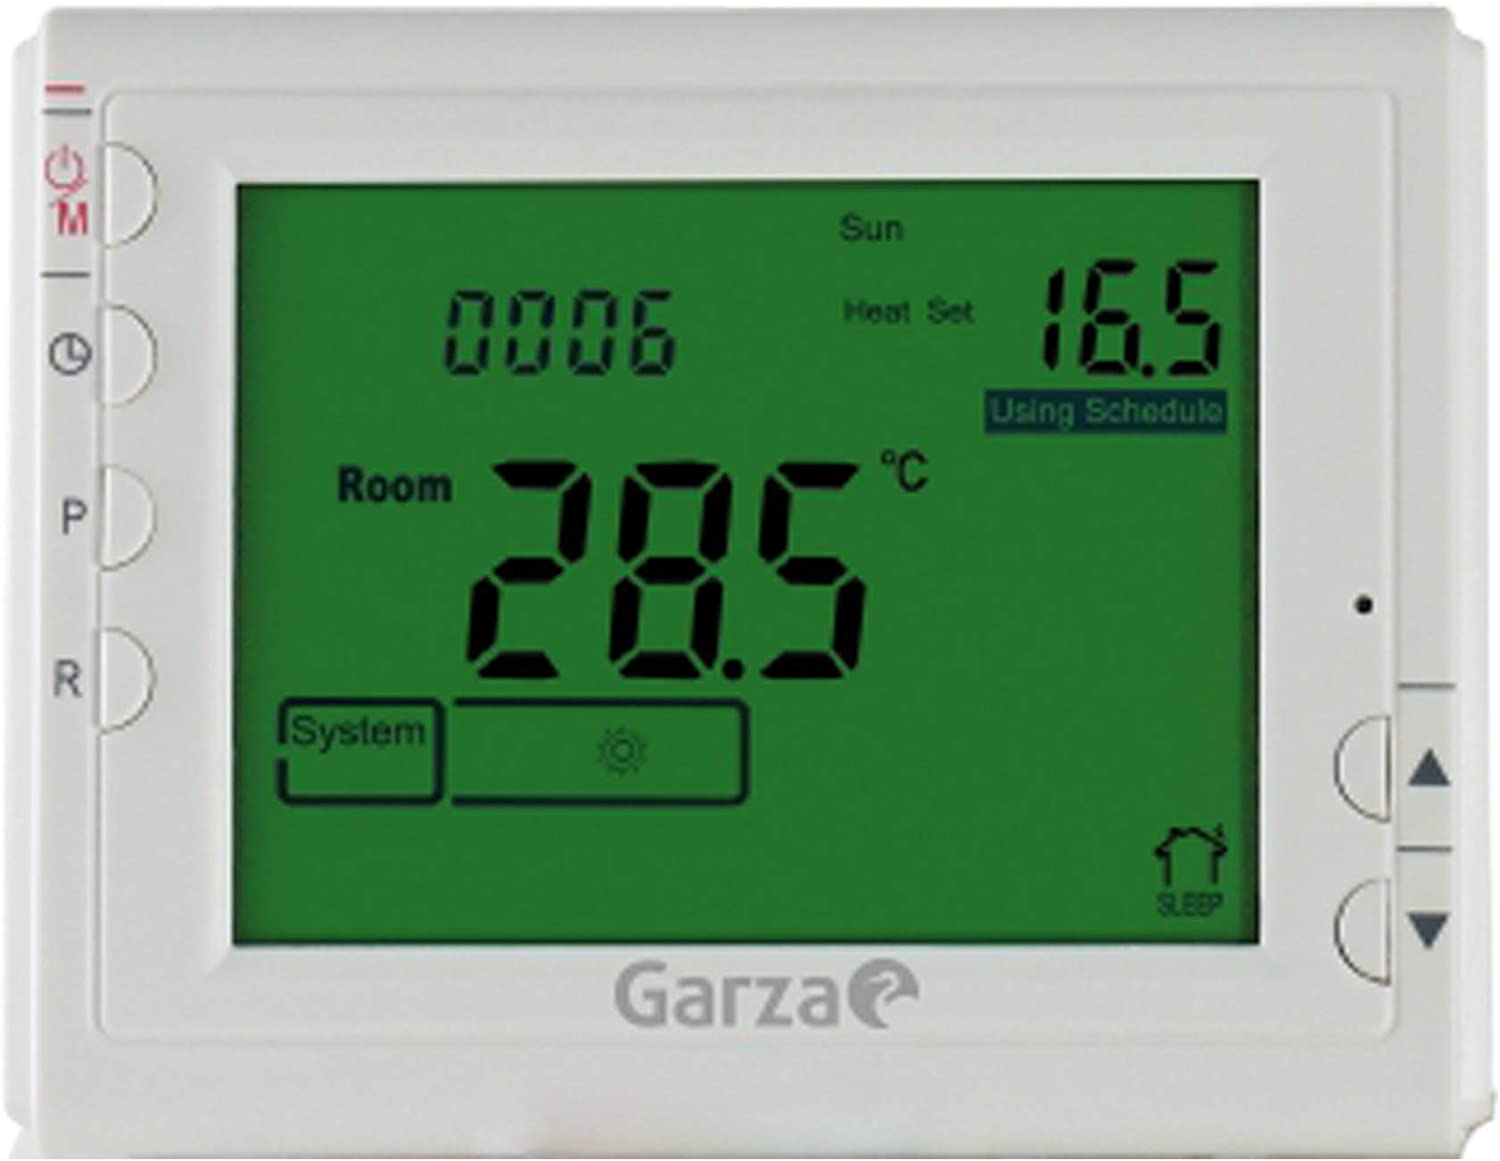 Garza 400606 Crono termostato Digital programable, Blanco